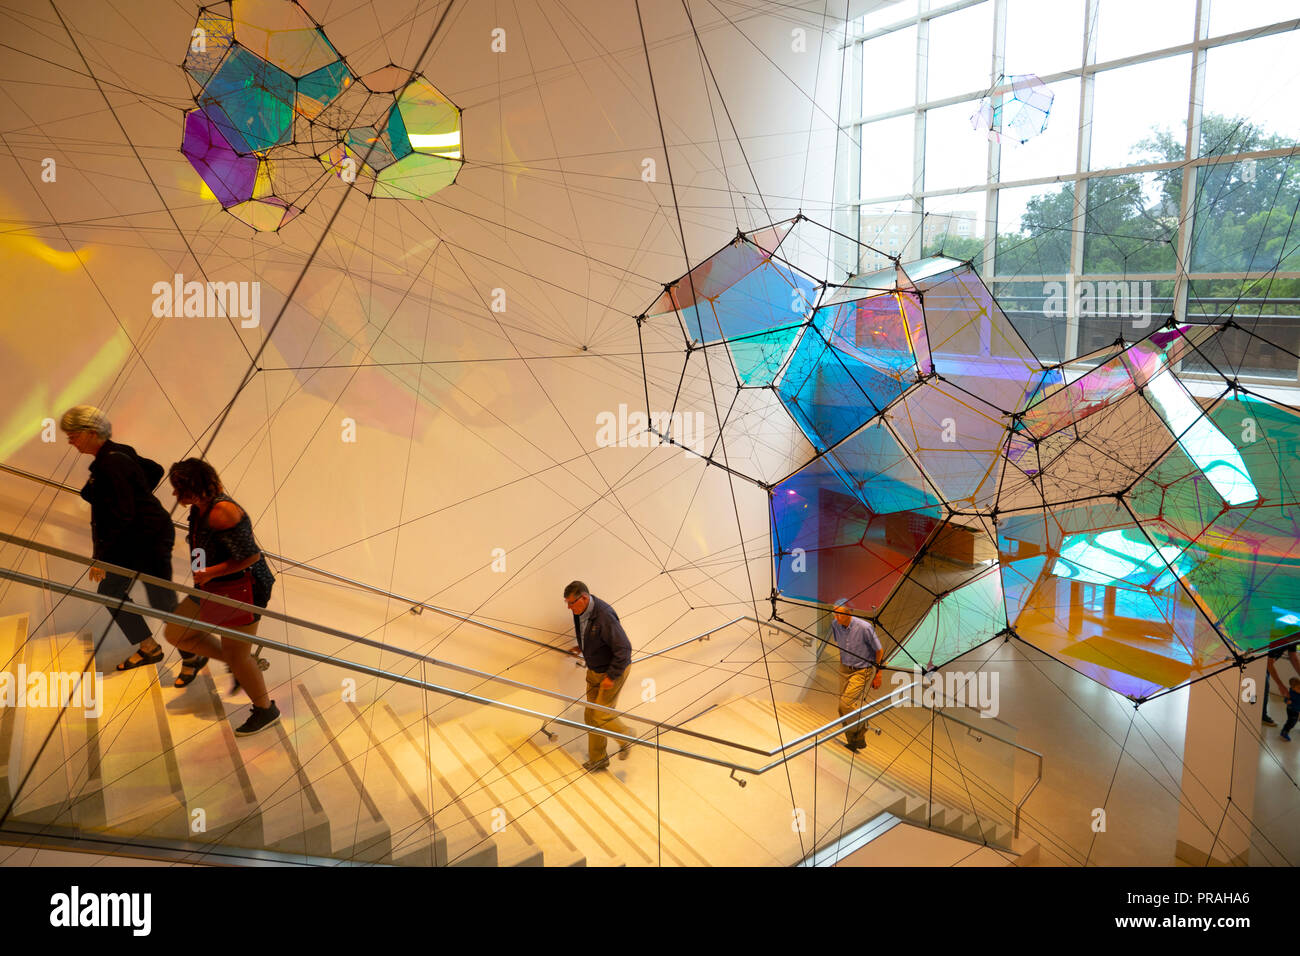 usa-maryland-baltimore-md-baltimore-museum-of-art-interior-staircase-PRAHA6.jpg